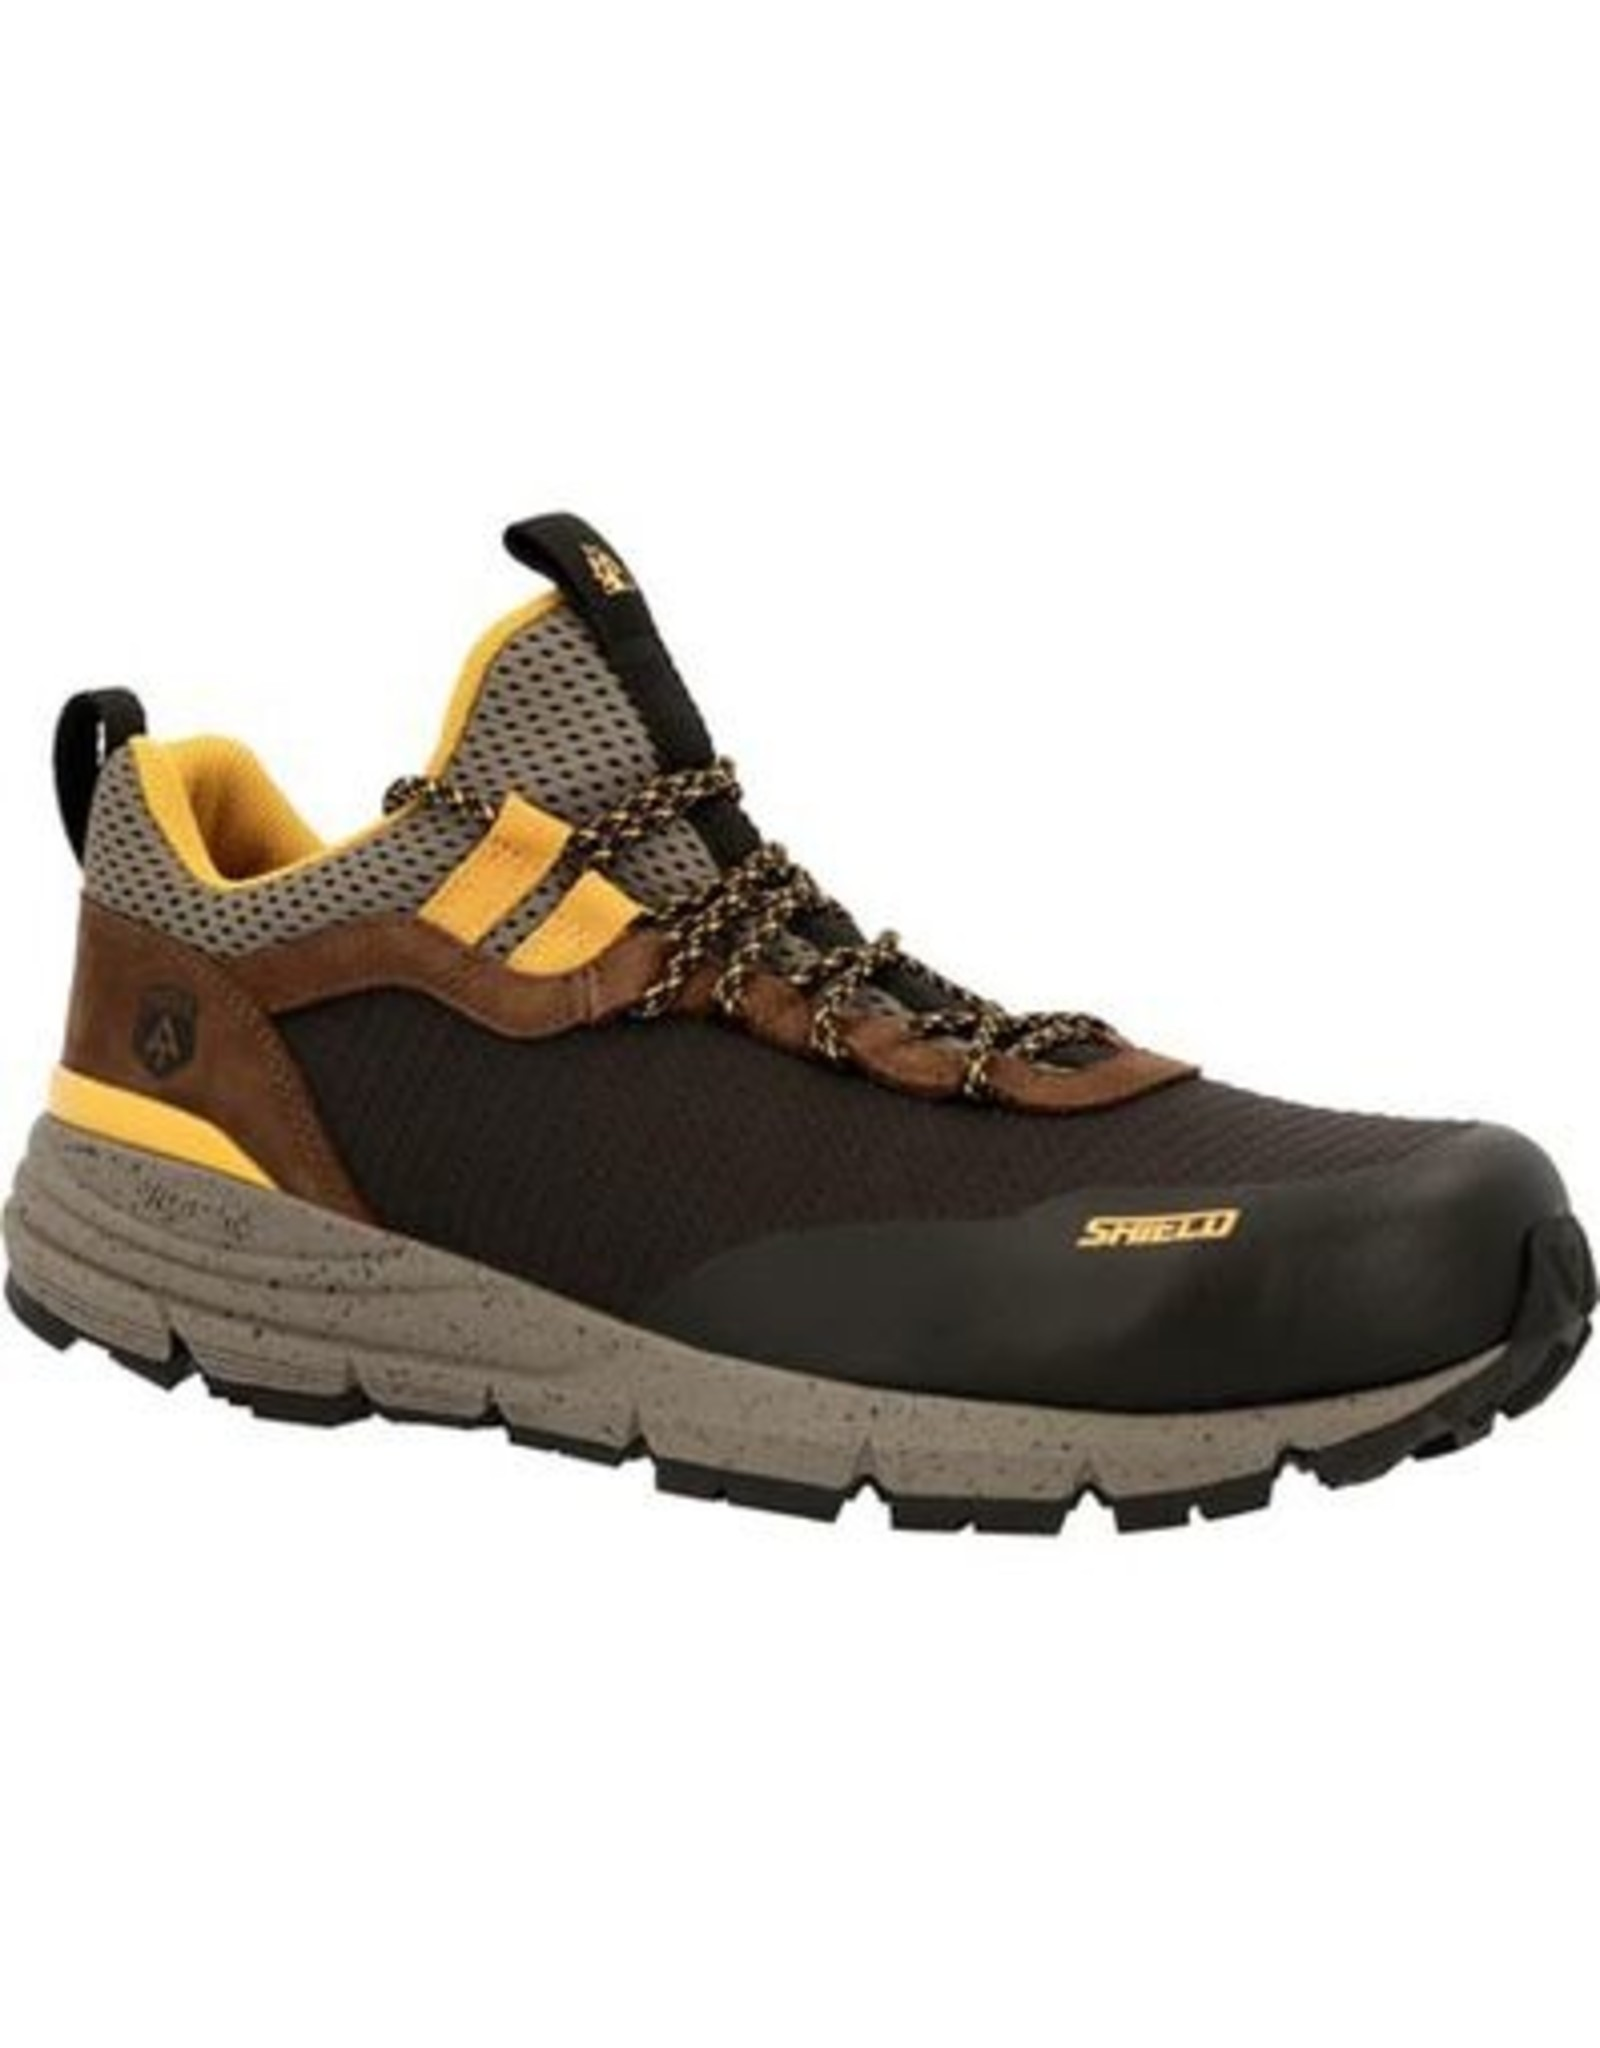 Boots-Men ROCKY RKK0341 Rugged AT Composite Toe Work Sneaker